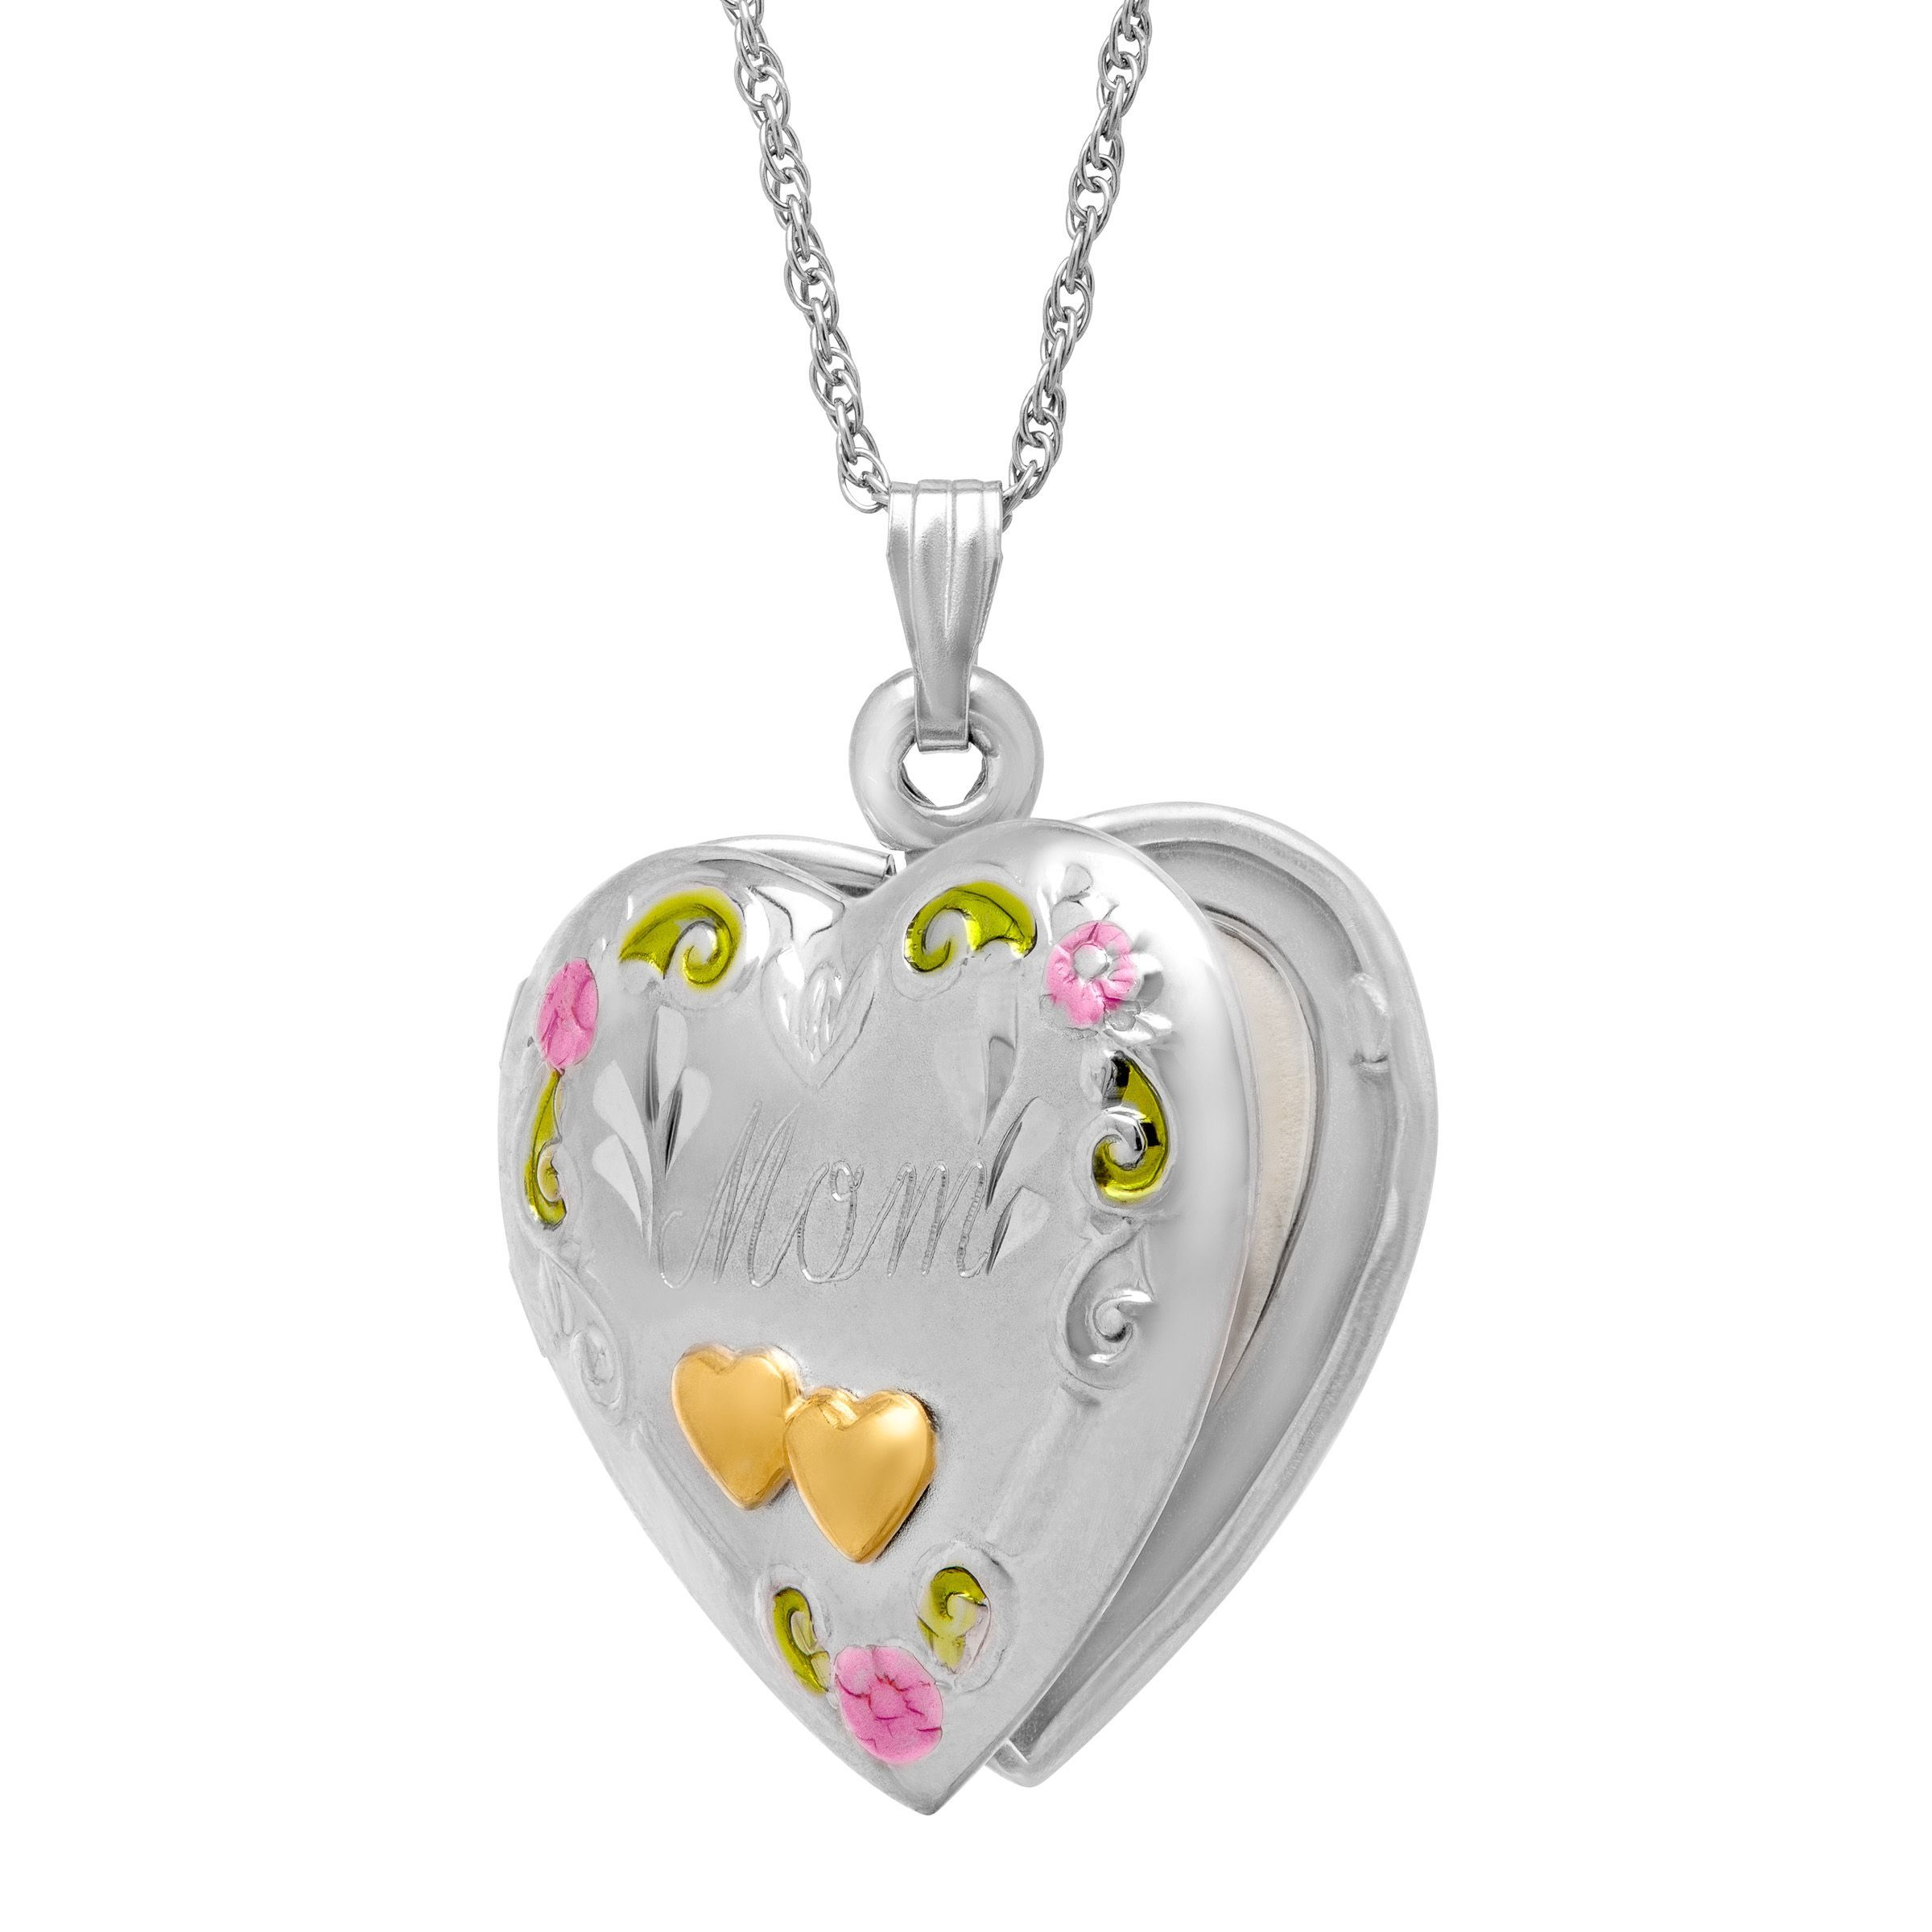 Double Heart /'Mom/' Locket in Sterling Silver and 14K Gold